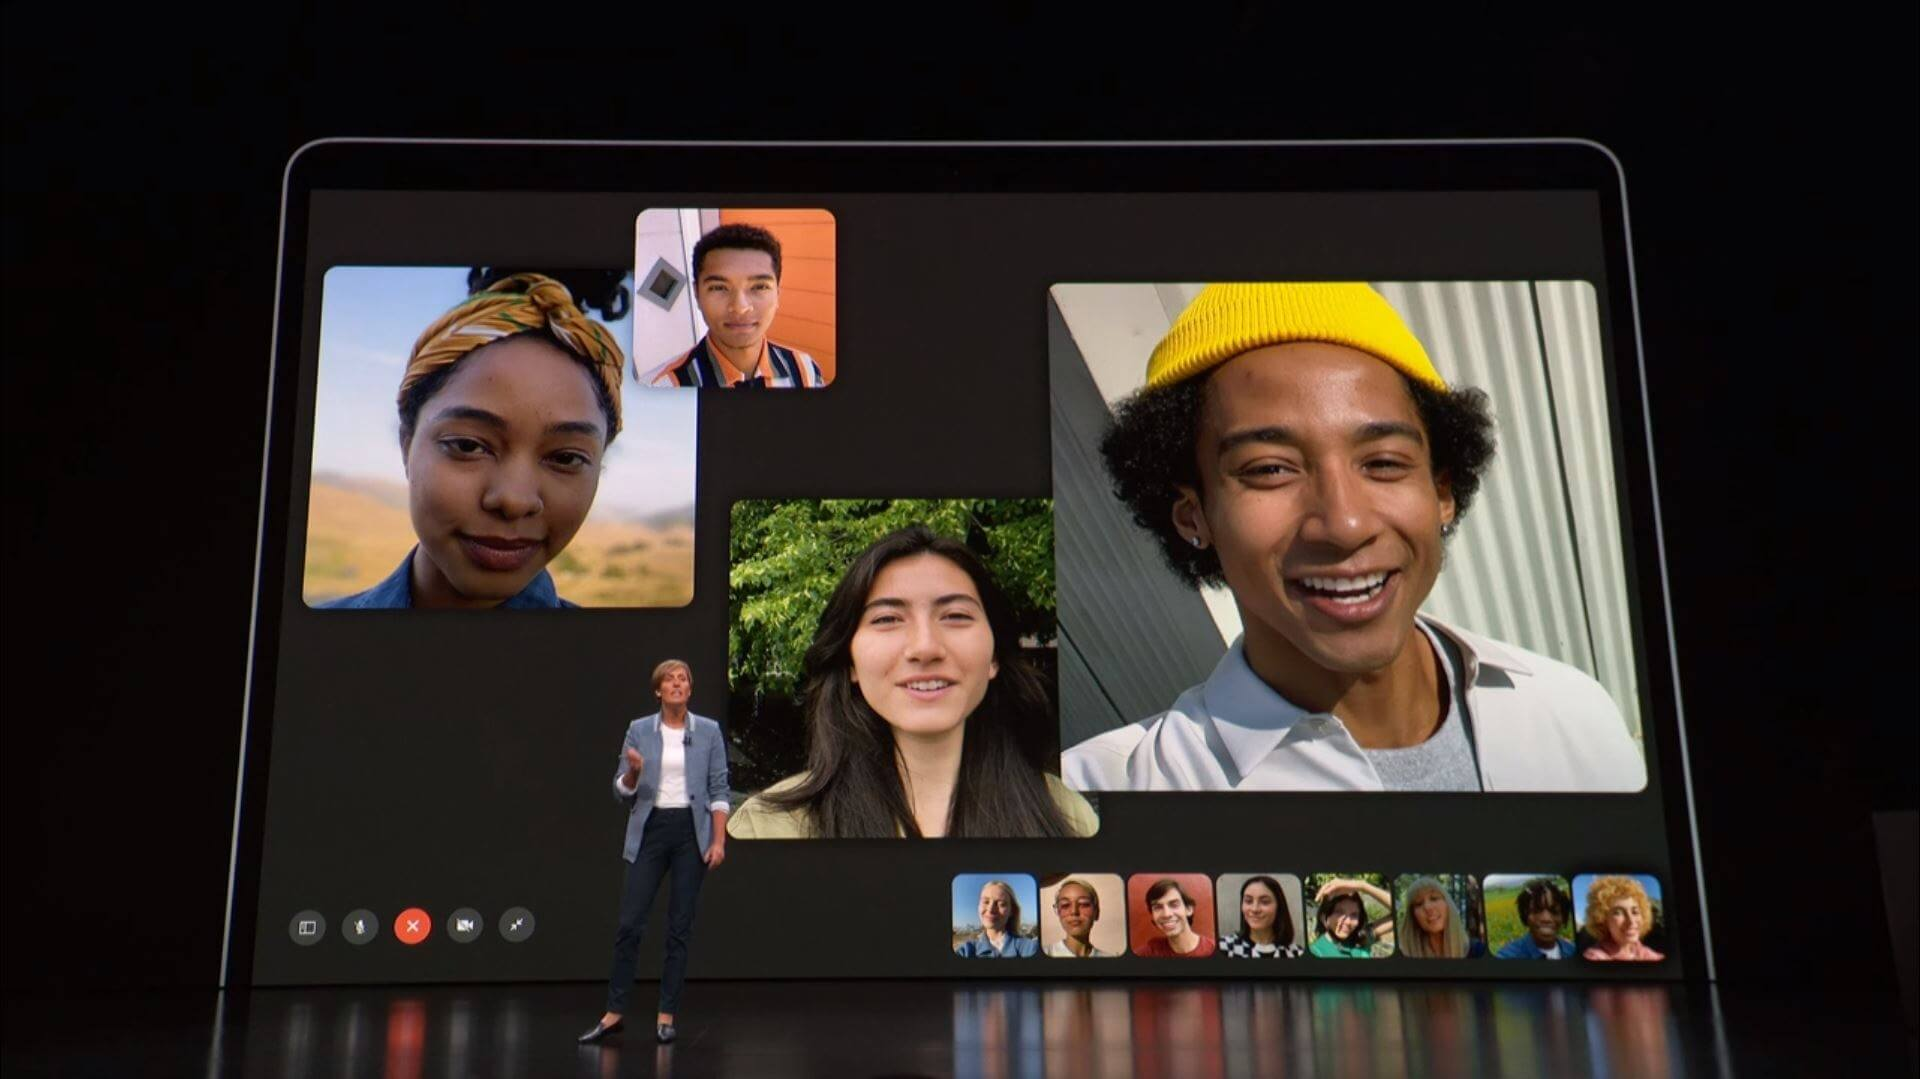 Apple is compensating the teenager who uncovered FaceTime Group Chat security flaw